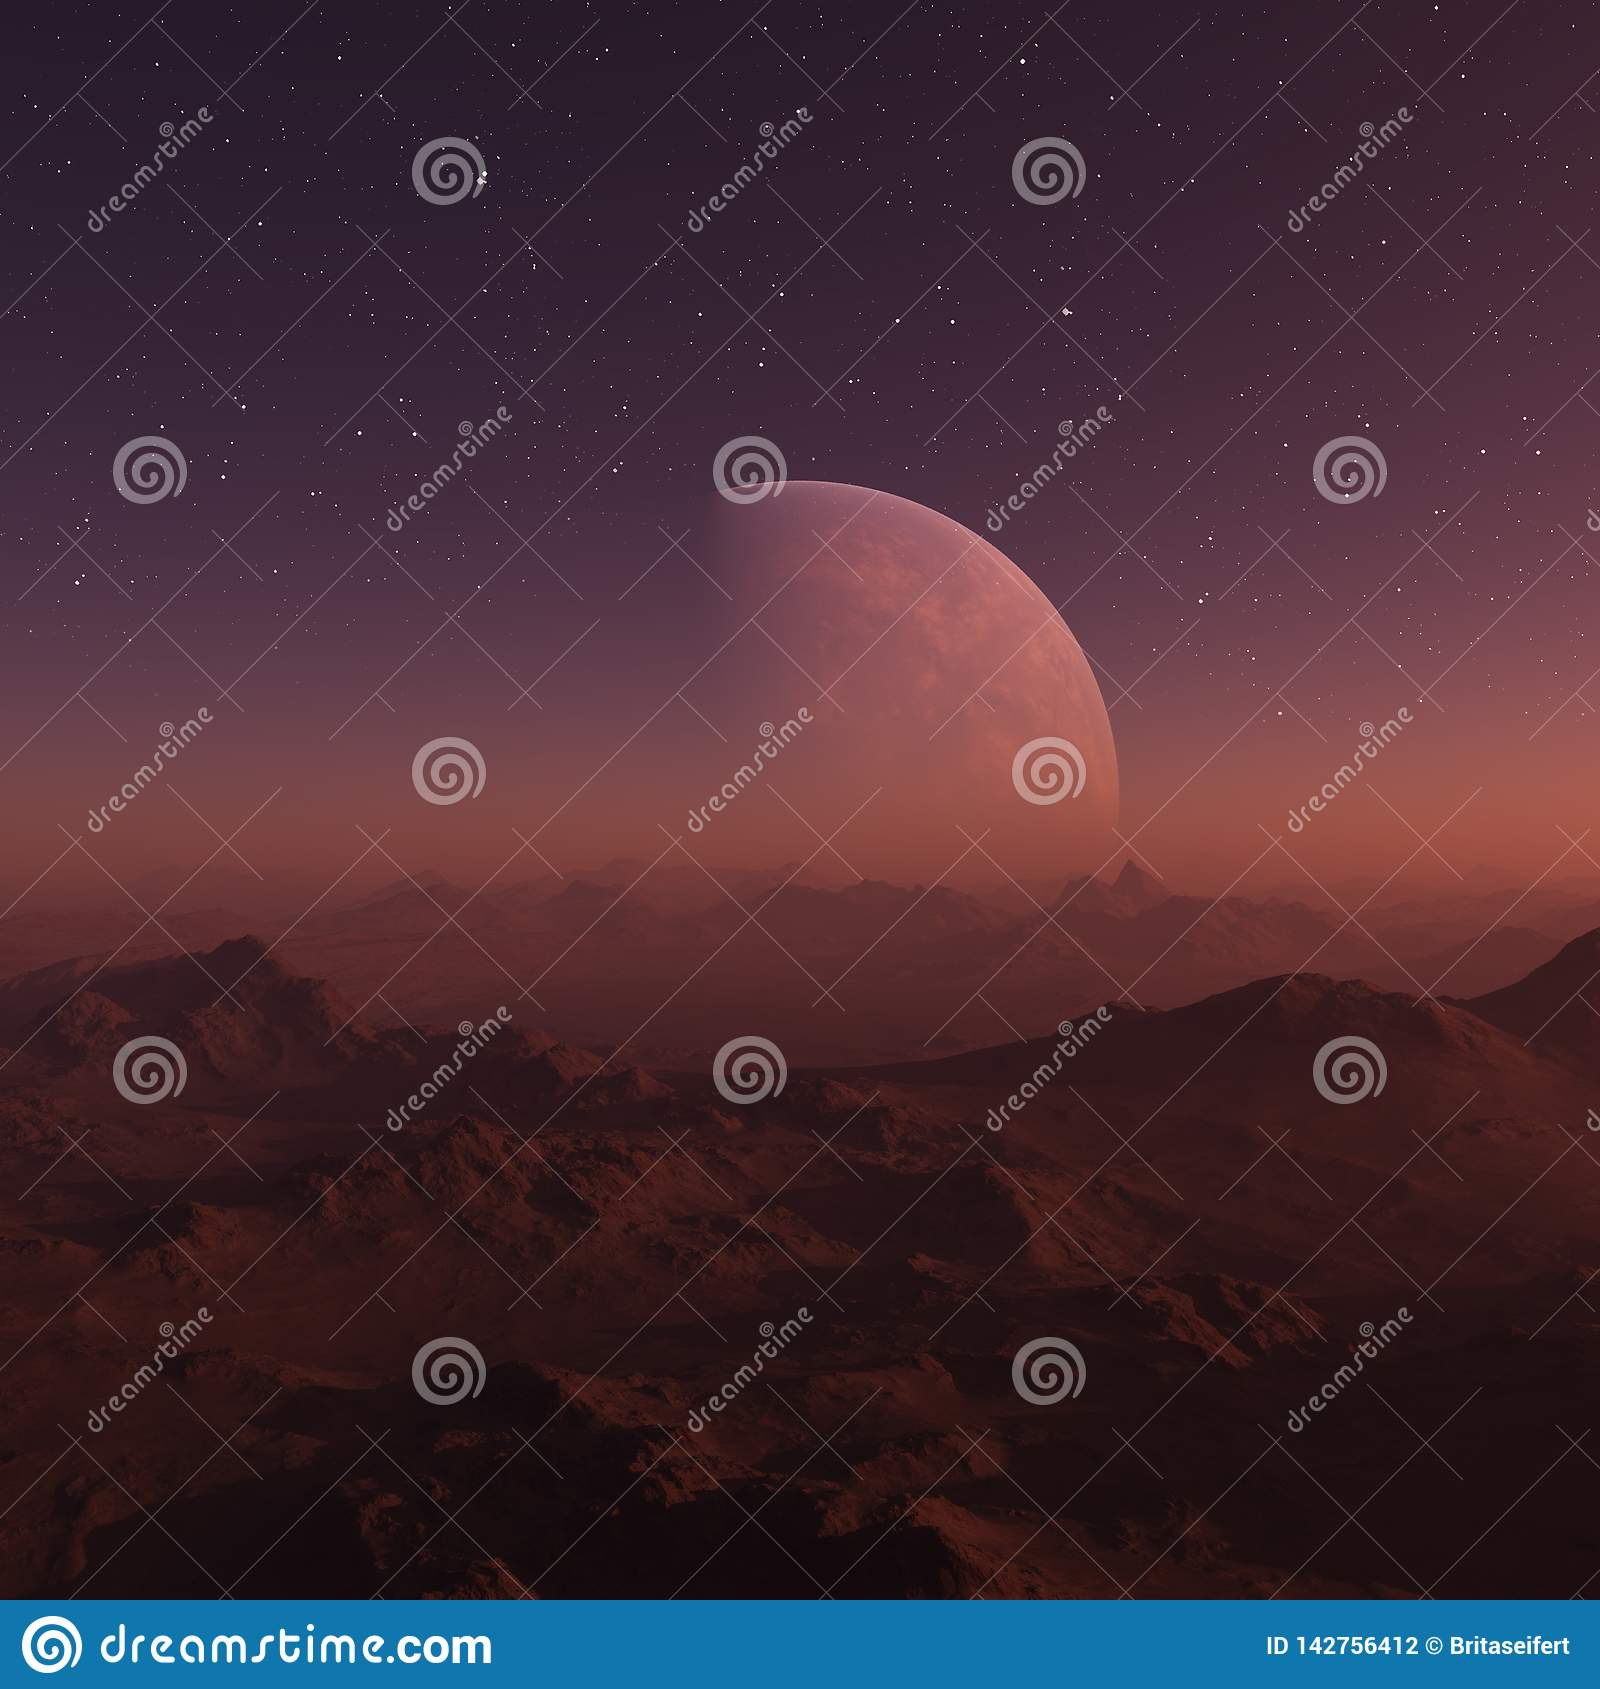 3d Rendered Space Art Alien Planet A Fantasy Landscape With Red Skies And Stars Stock Illustration Illustration Of Away Design 142756412